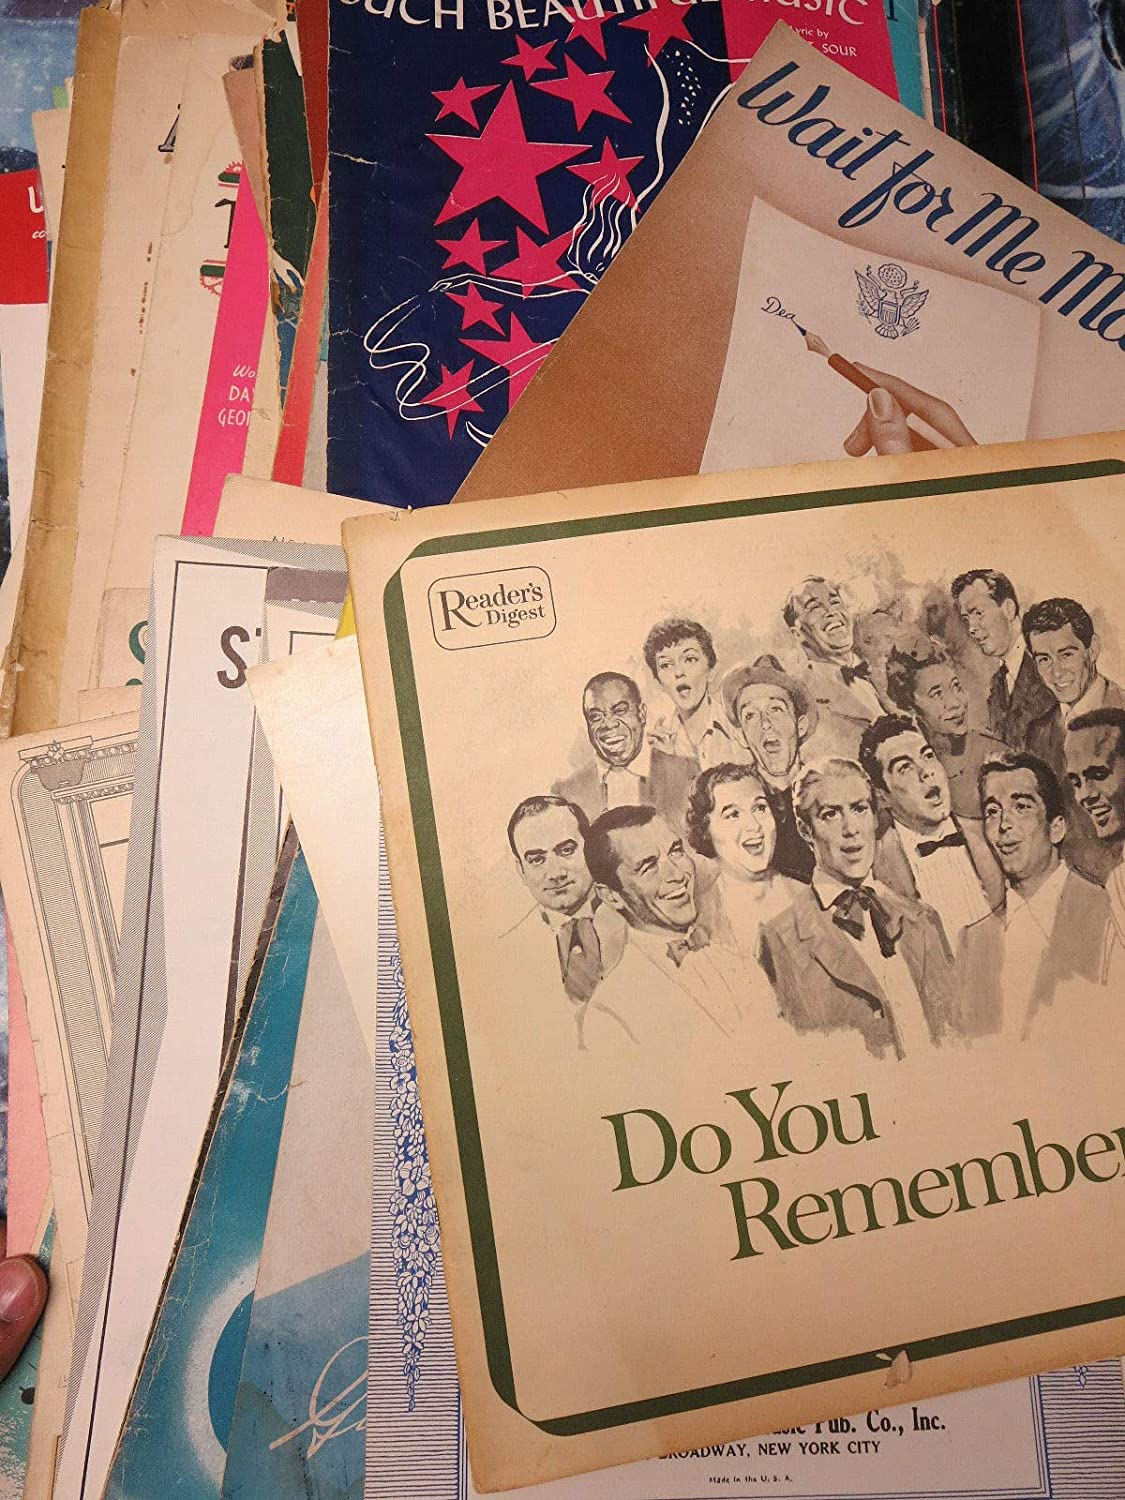 Sheet Music Lot - Popular Songs from the 1940s to 1960s - 70